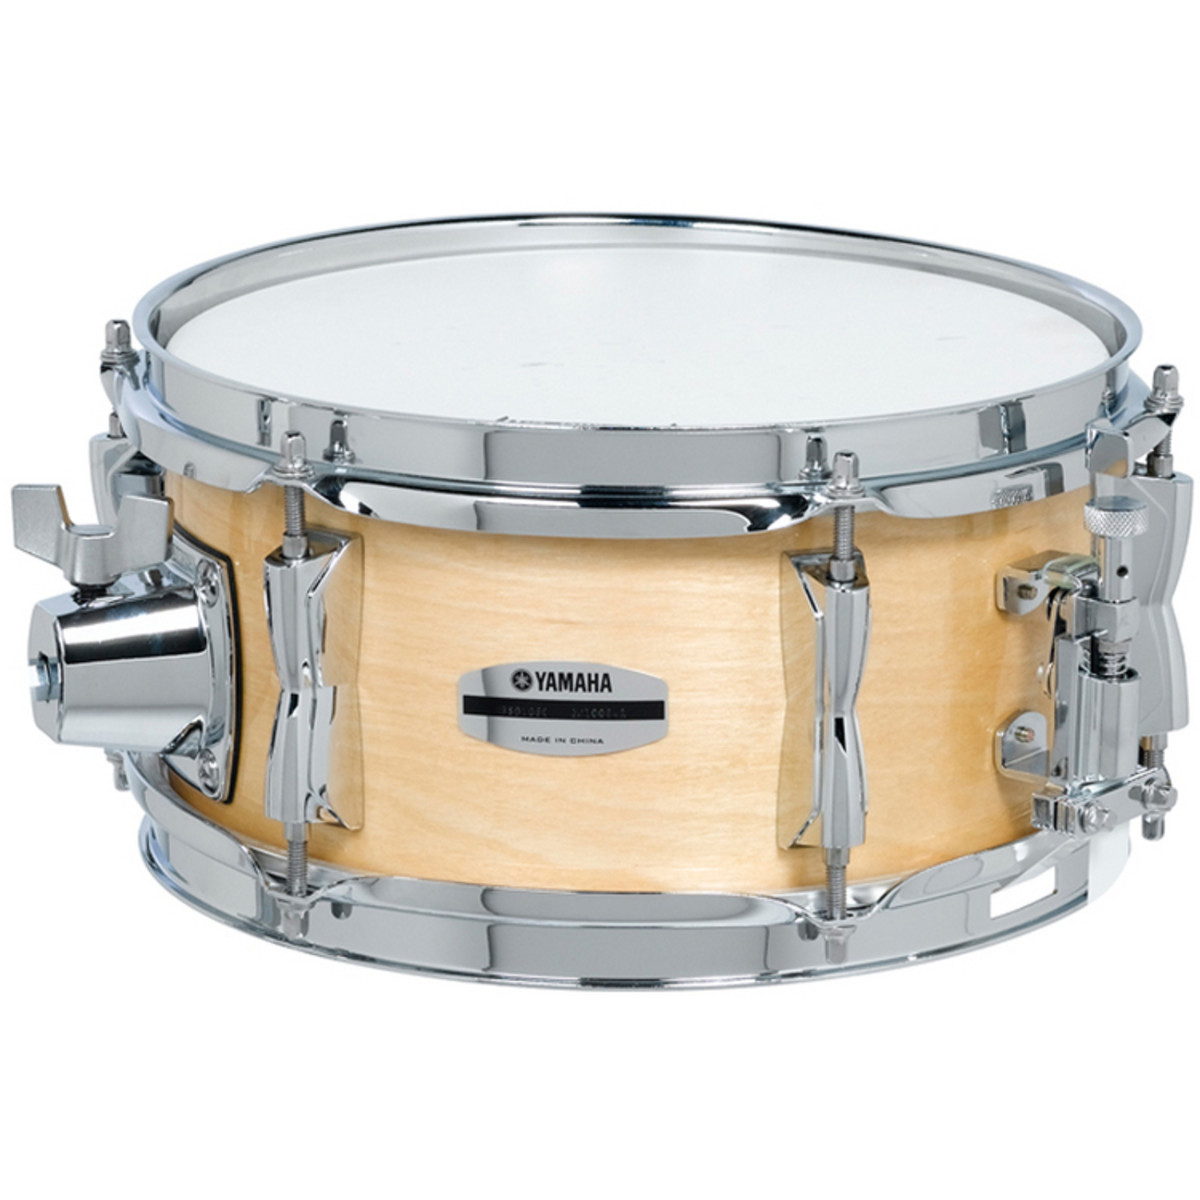 Yamaha bsd 1050 10 x 5 6 ply birch snare drum at for Yamaha stage custom steel snare drum 14x6 5